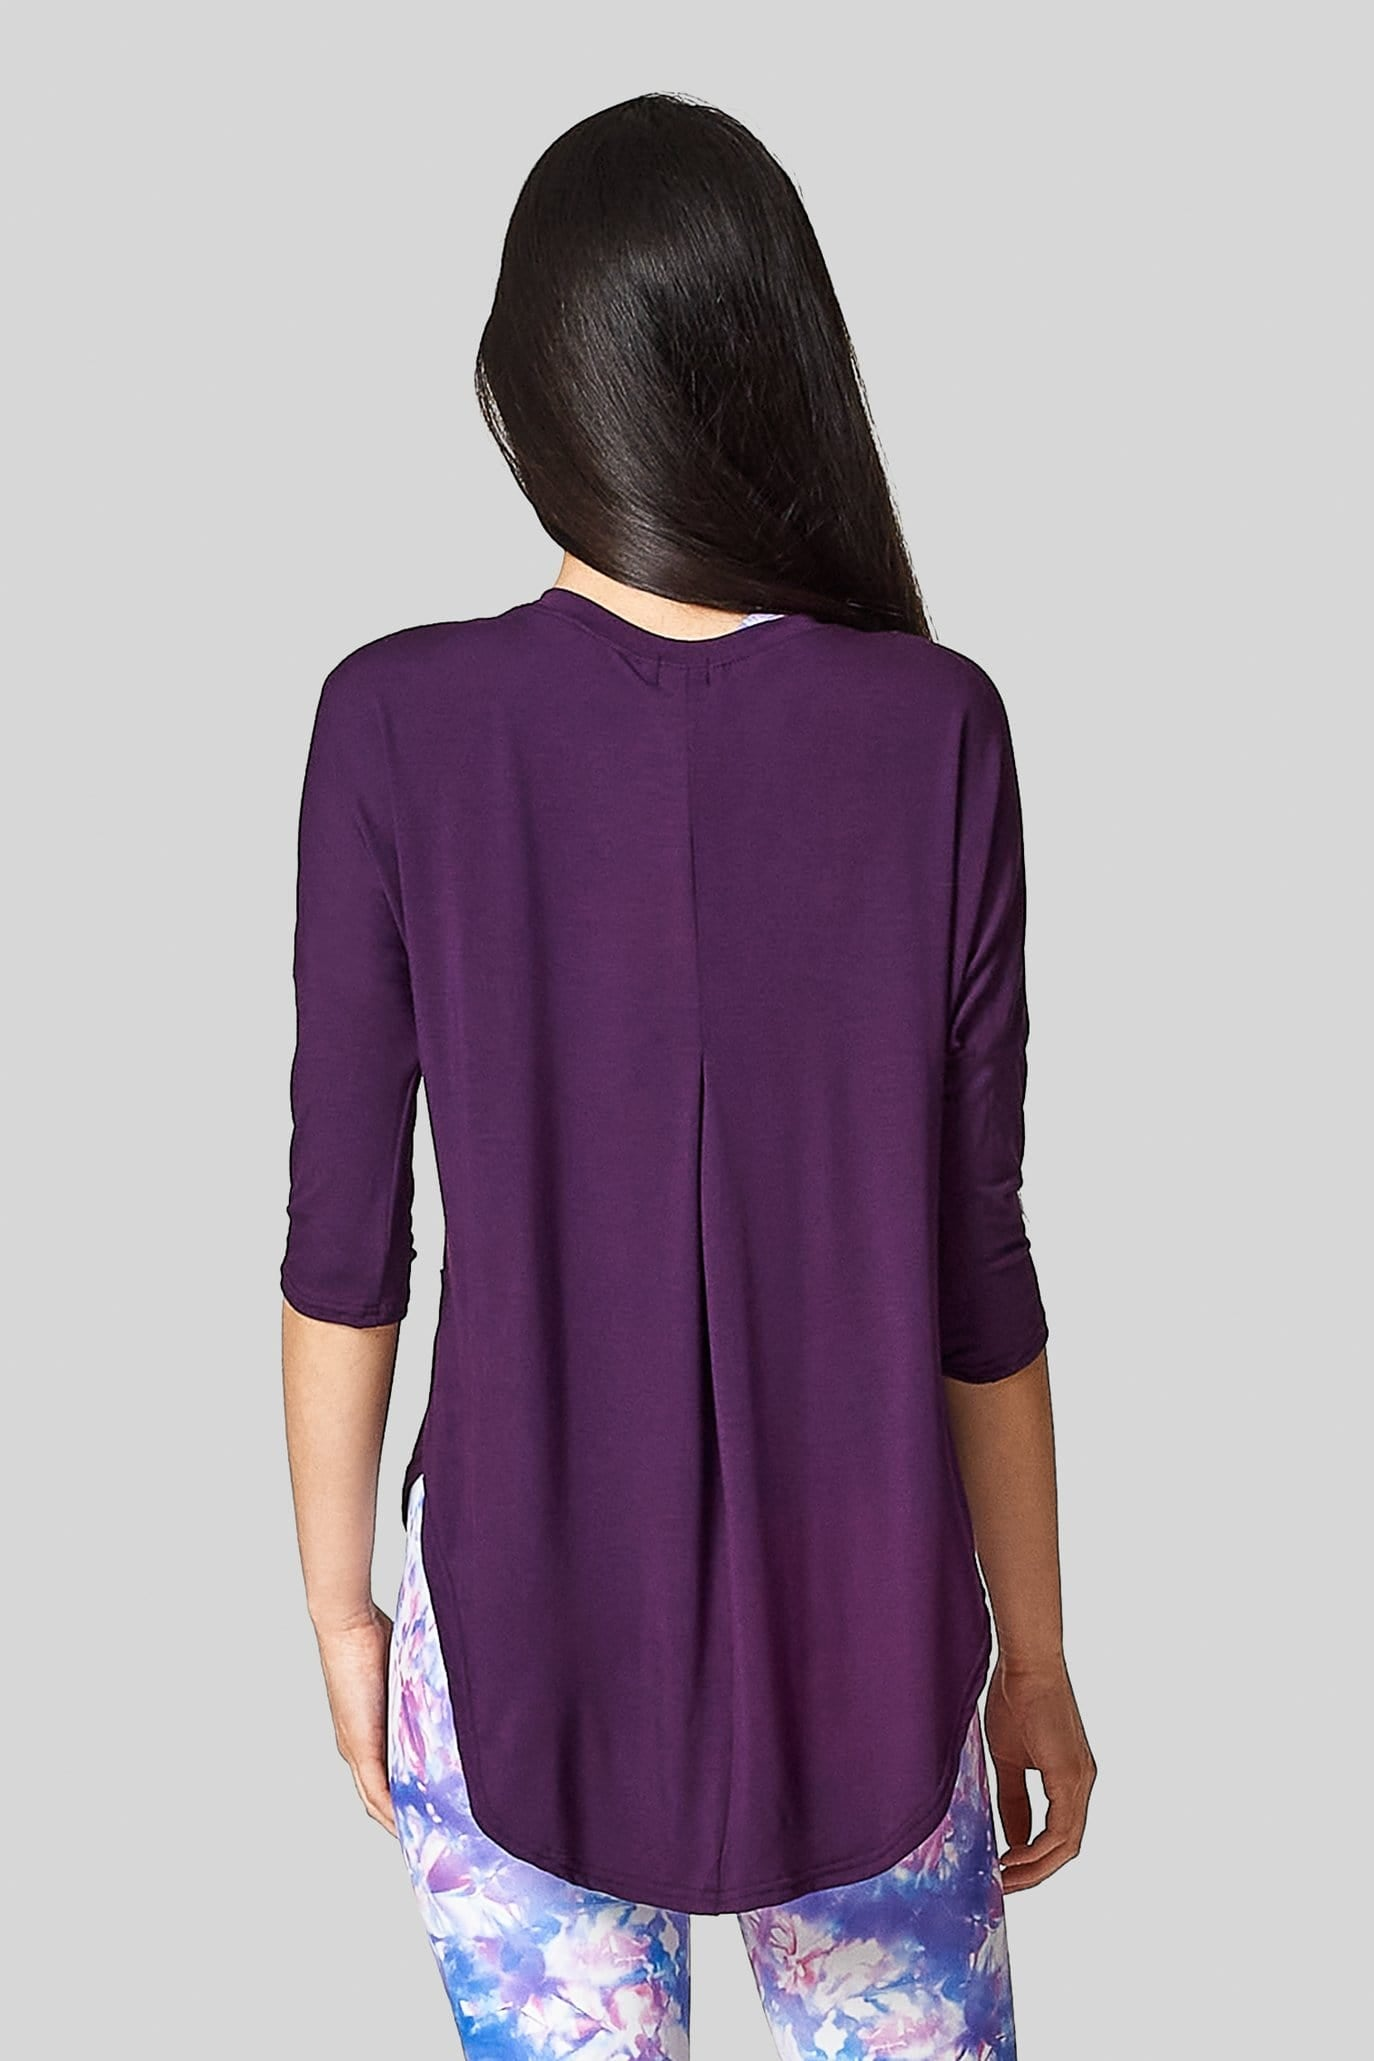 A woman wears a plum t-shirt with a long hem & pleat at the back.